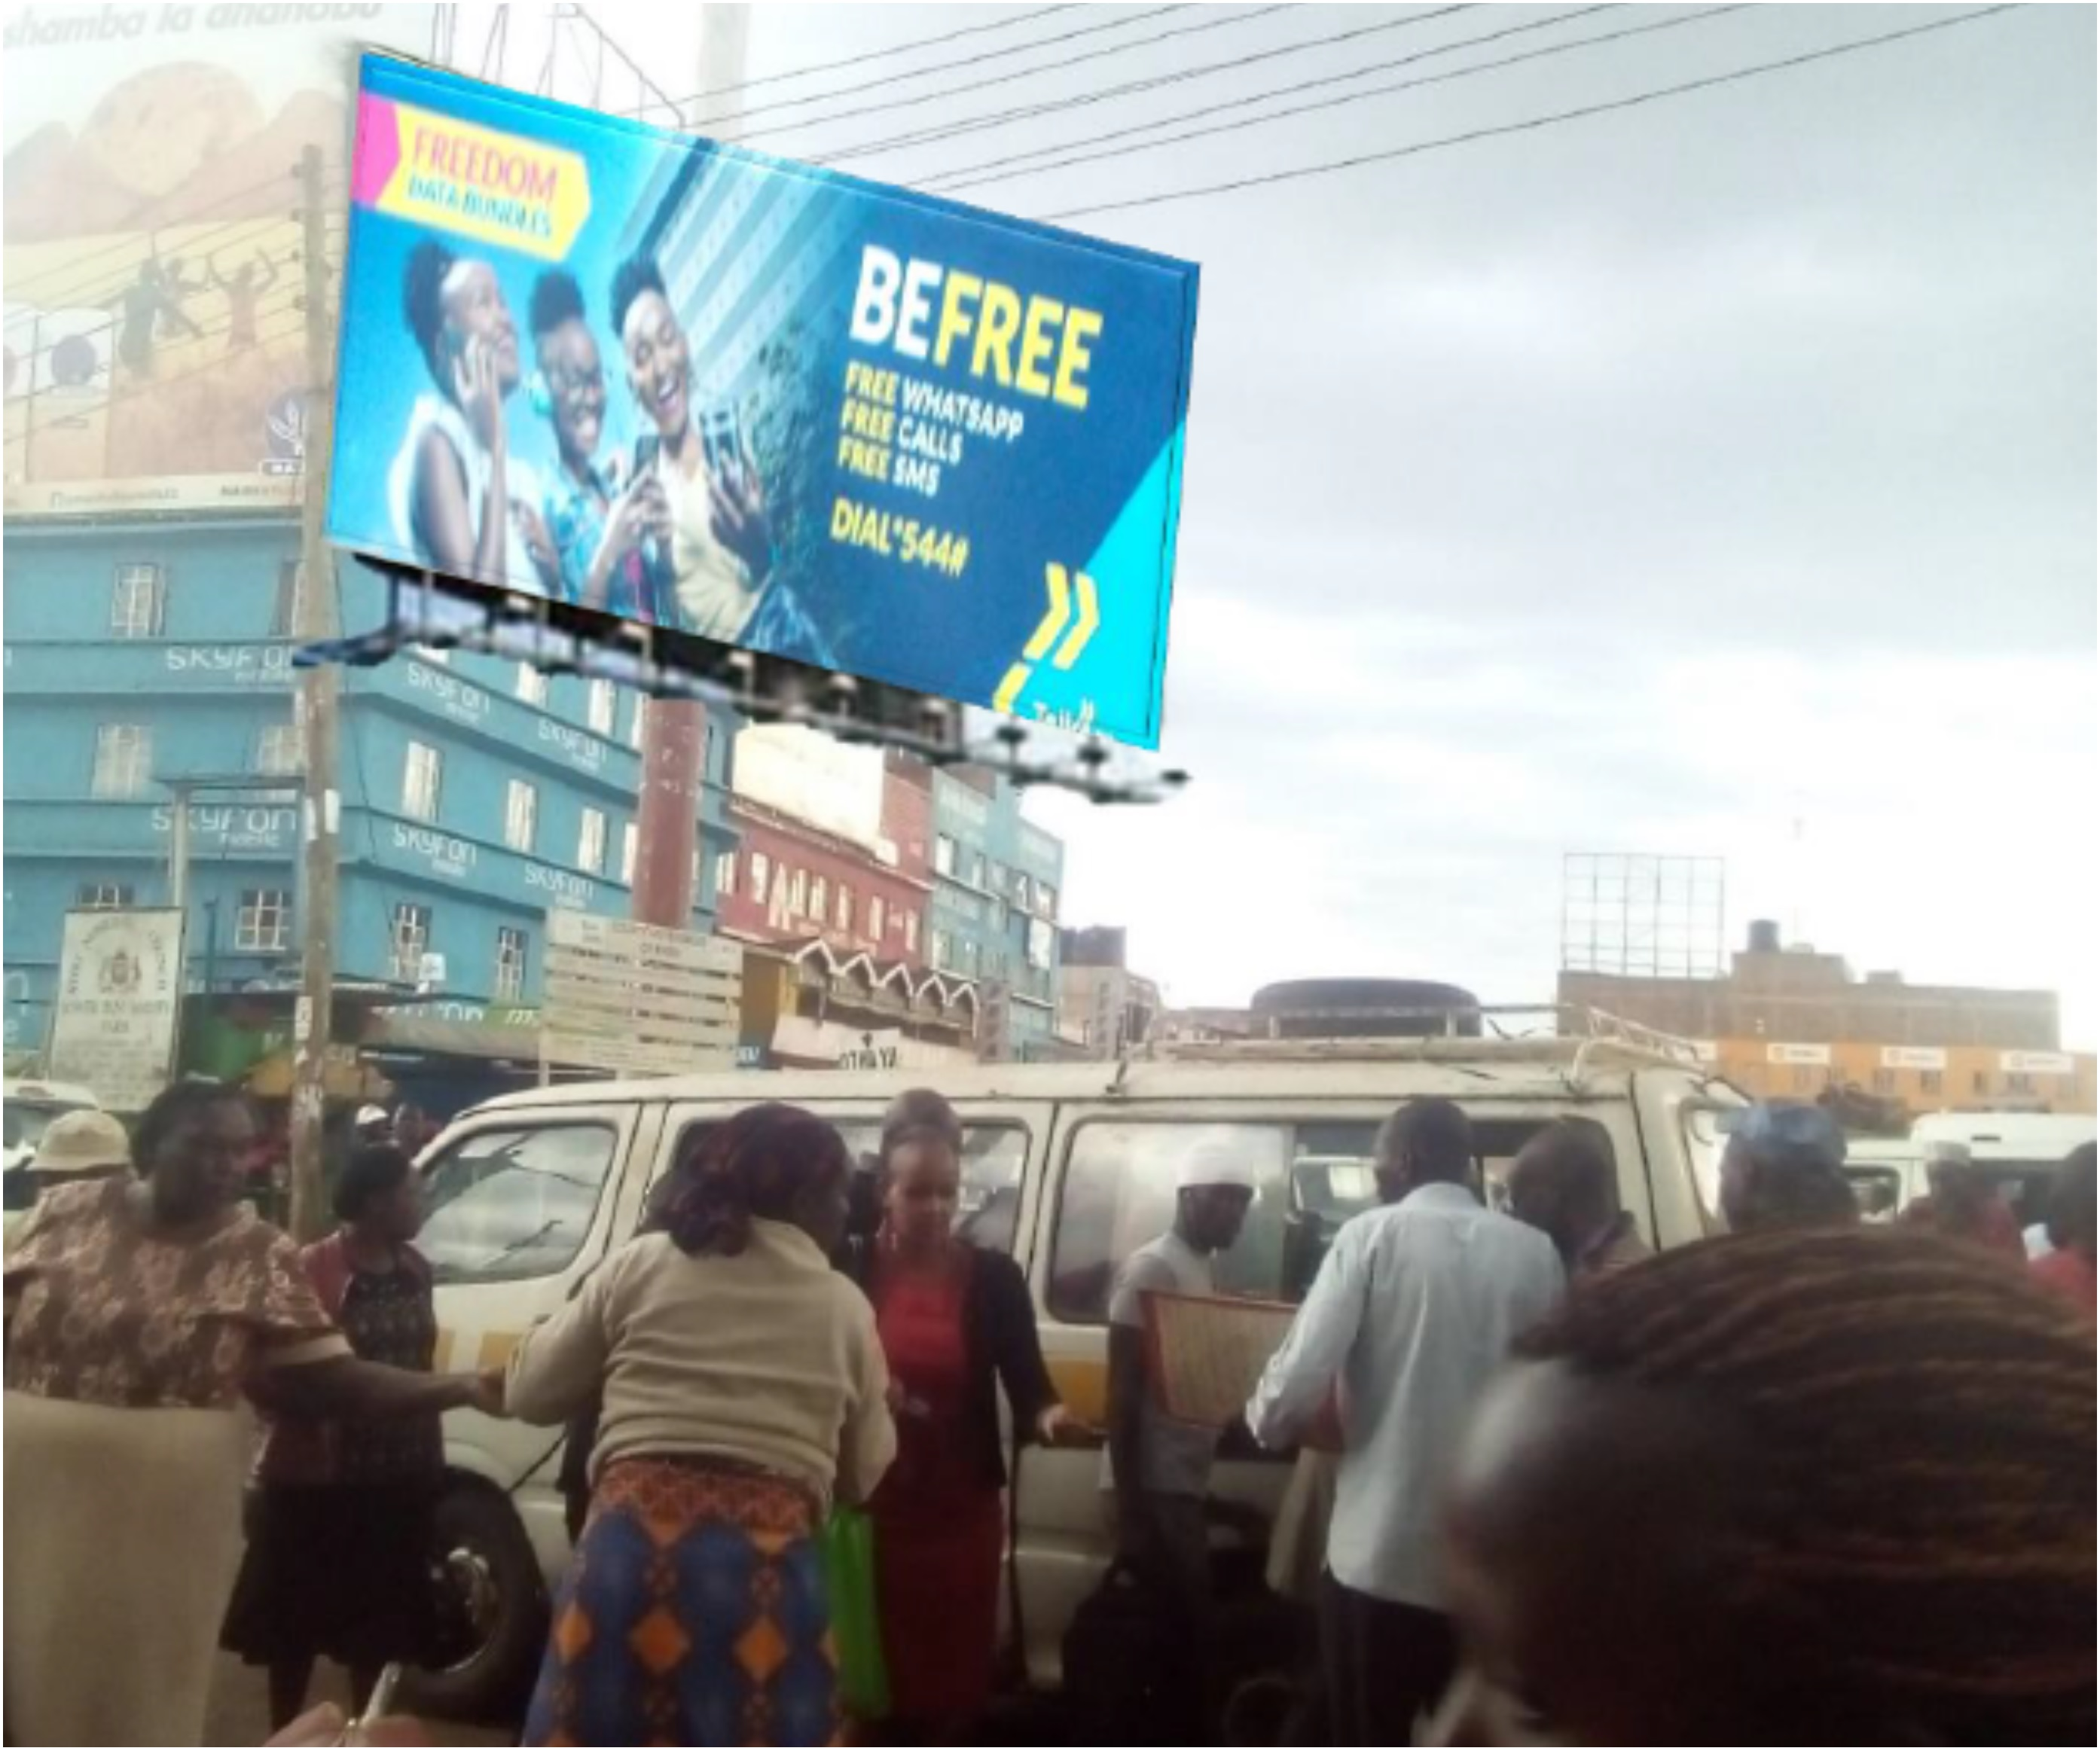 Sprint Kenya billboard